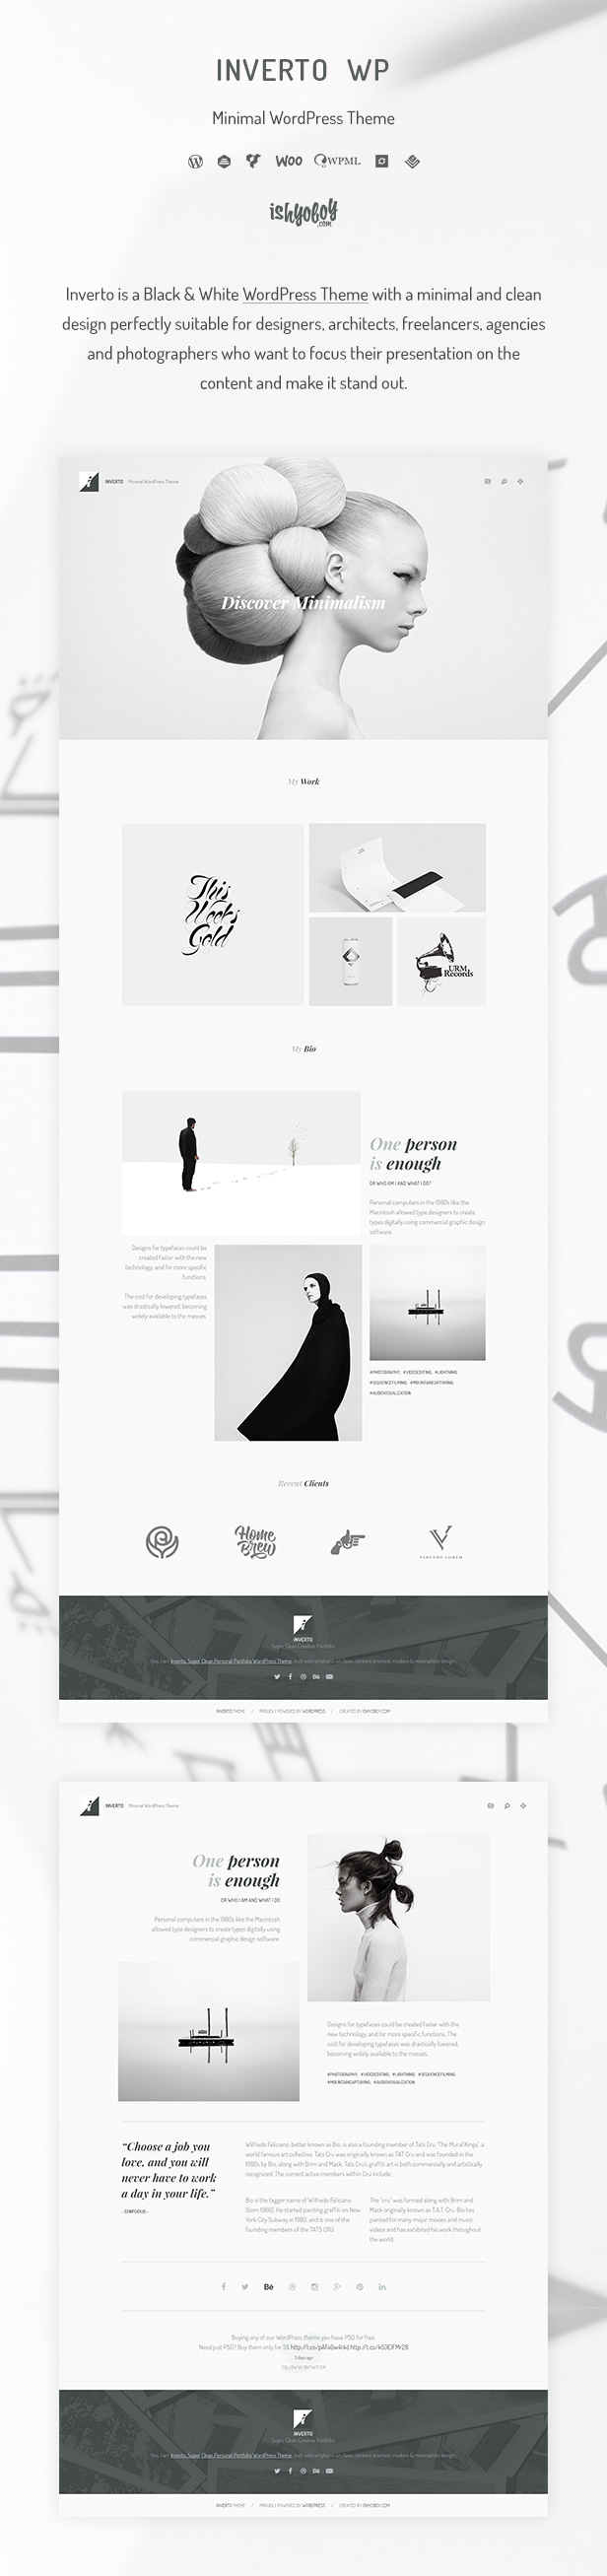 IshYoBoy | Inverto - Minimal WordPress theme